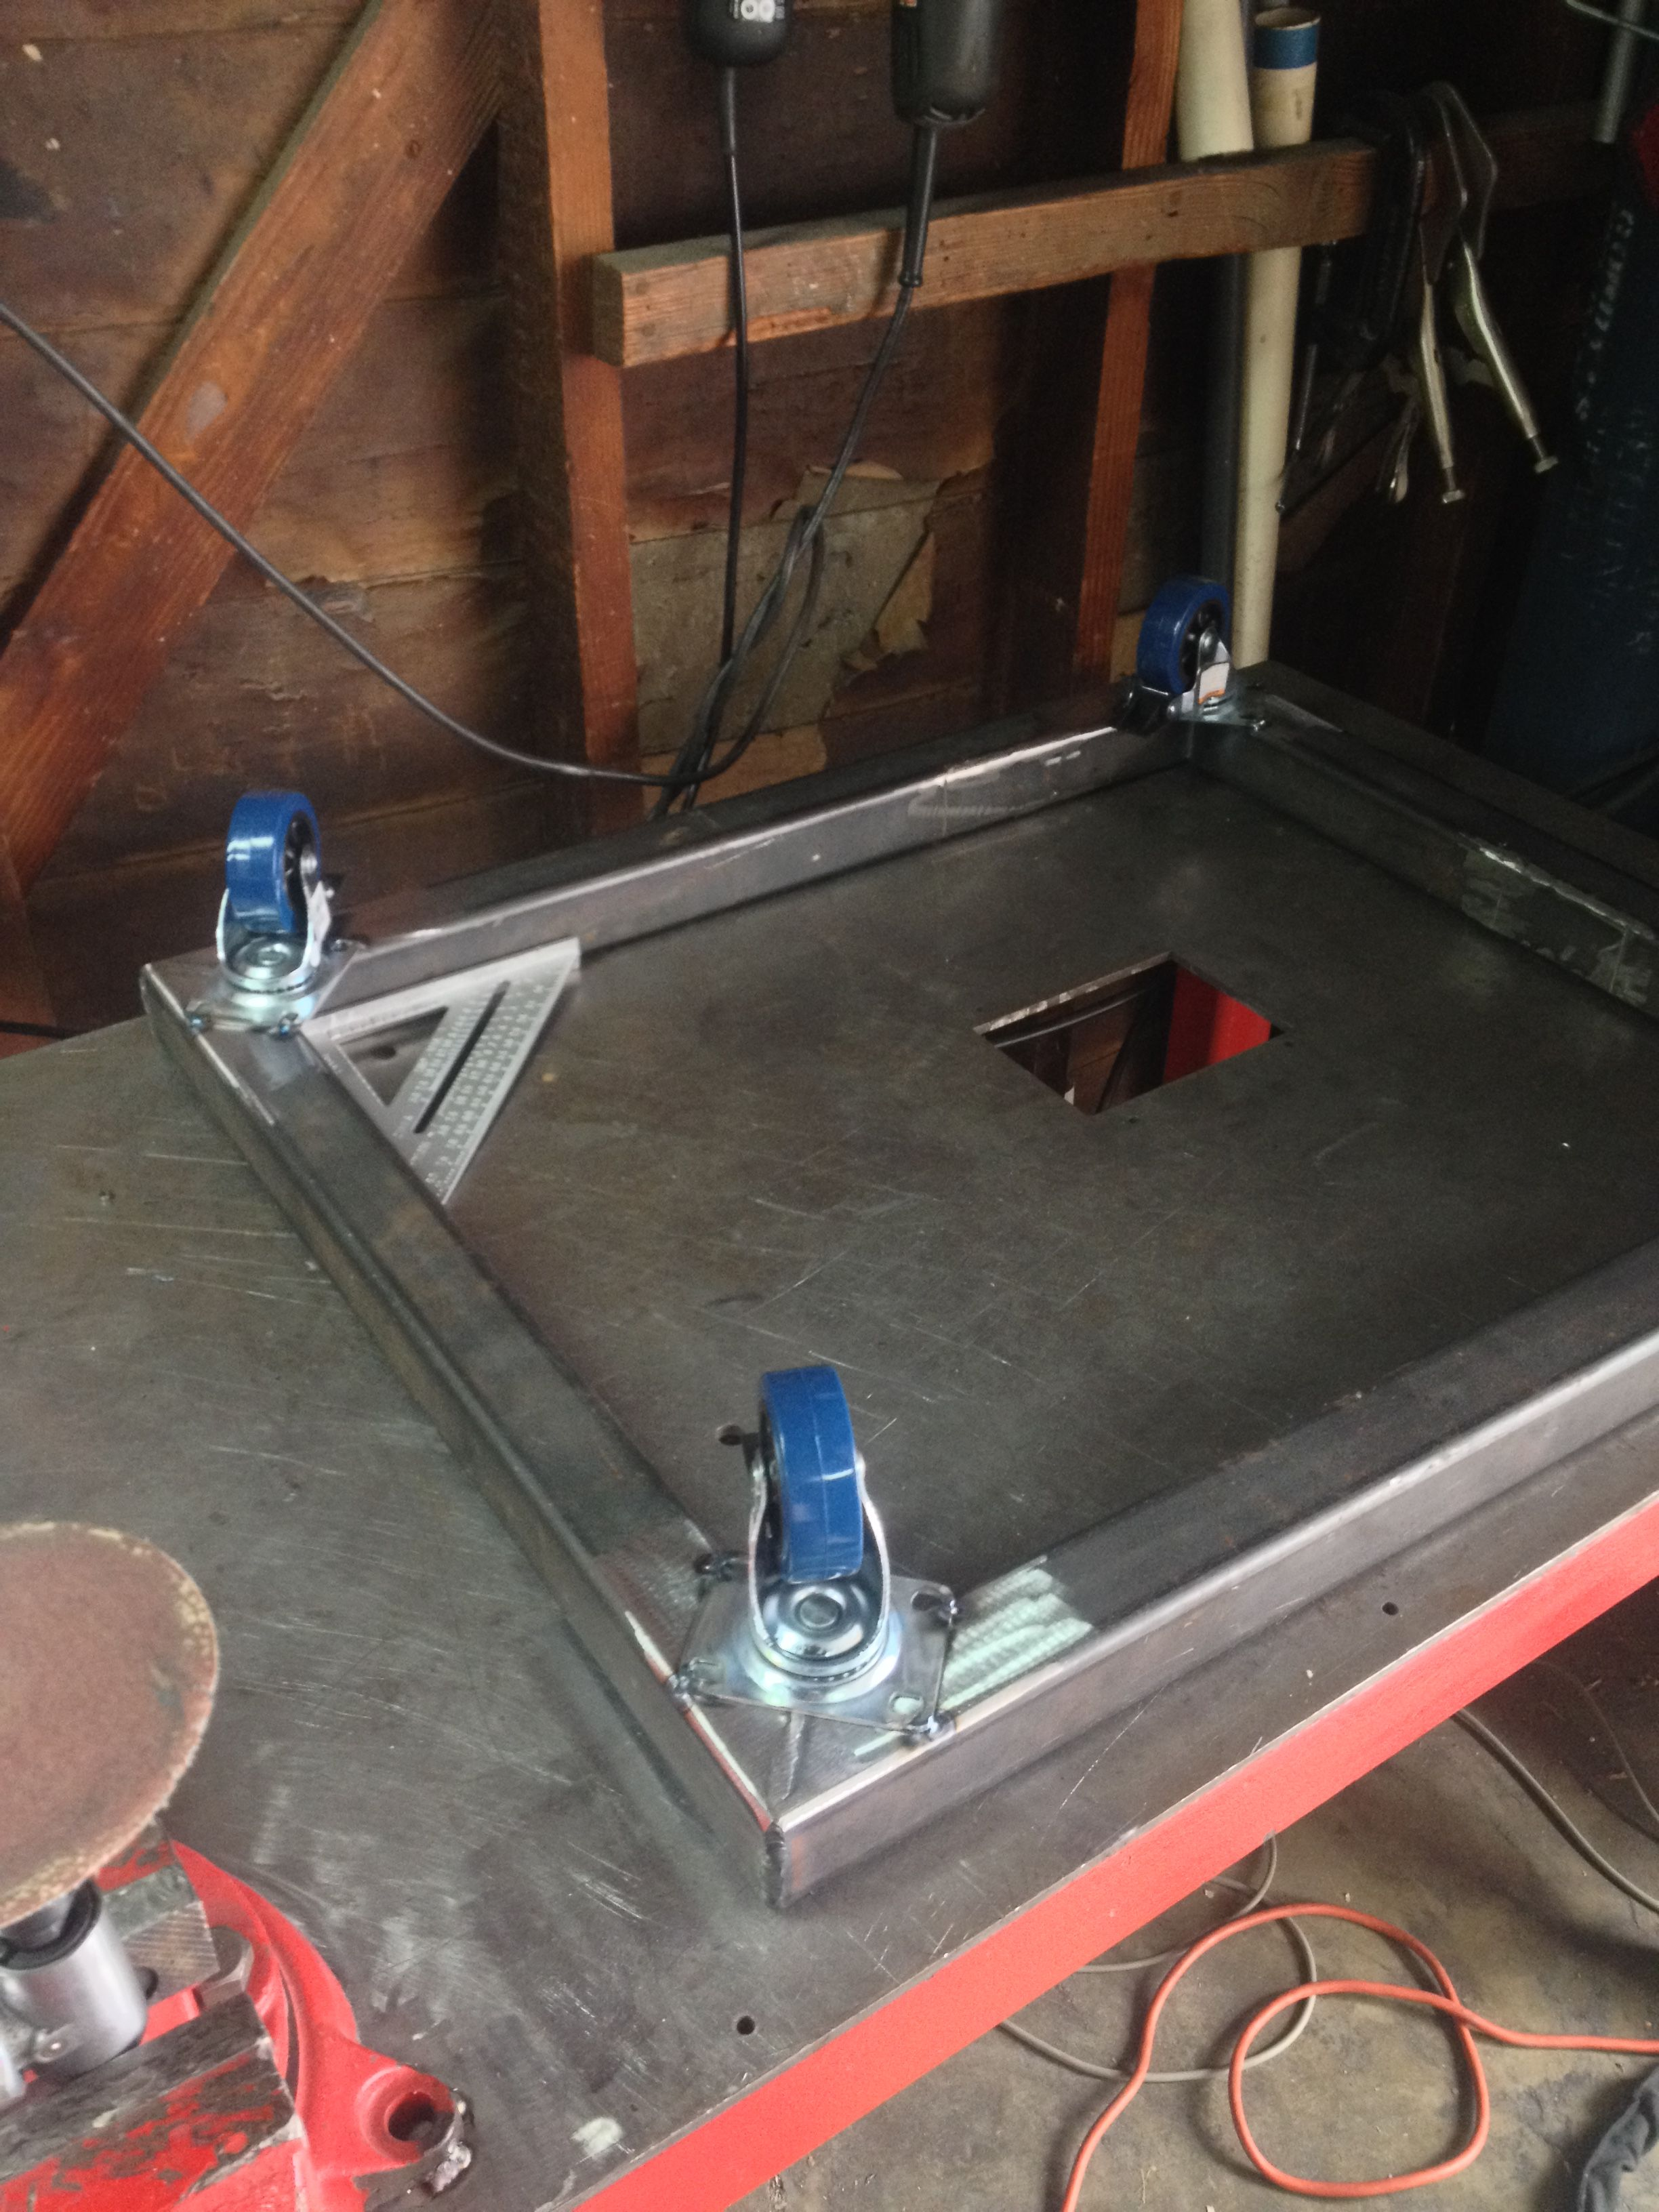 Tig welded square tube steel rolling stand for my router table tig welded square tube steel rolling stand for my router table harbor freight casters greentooth Images